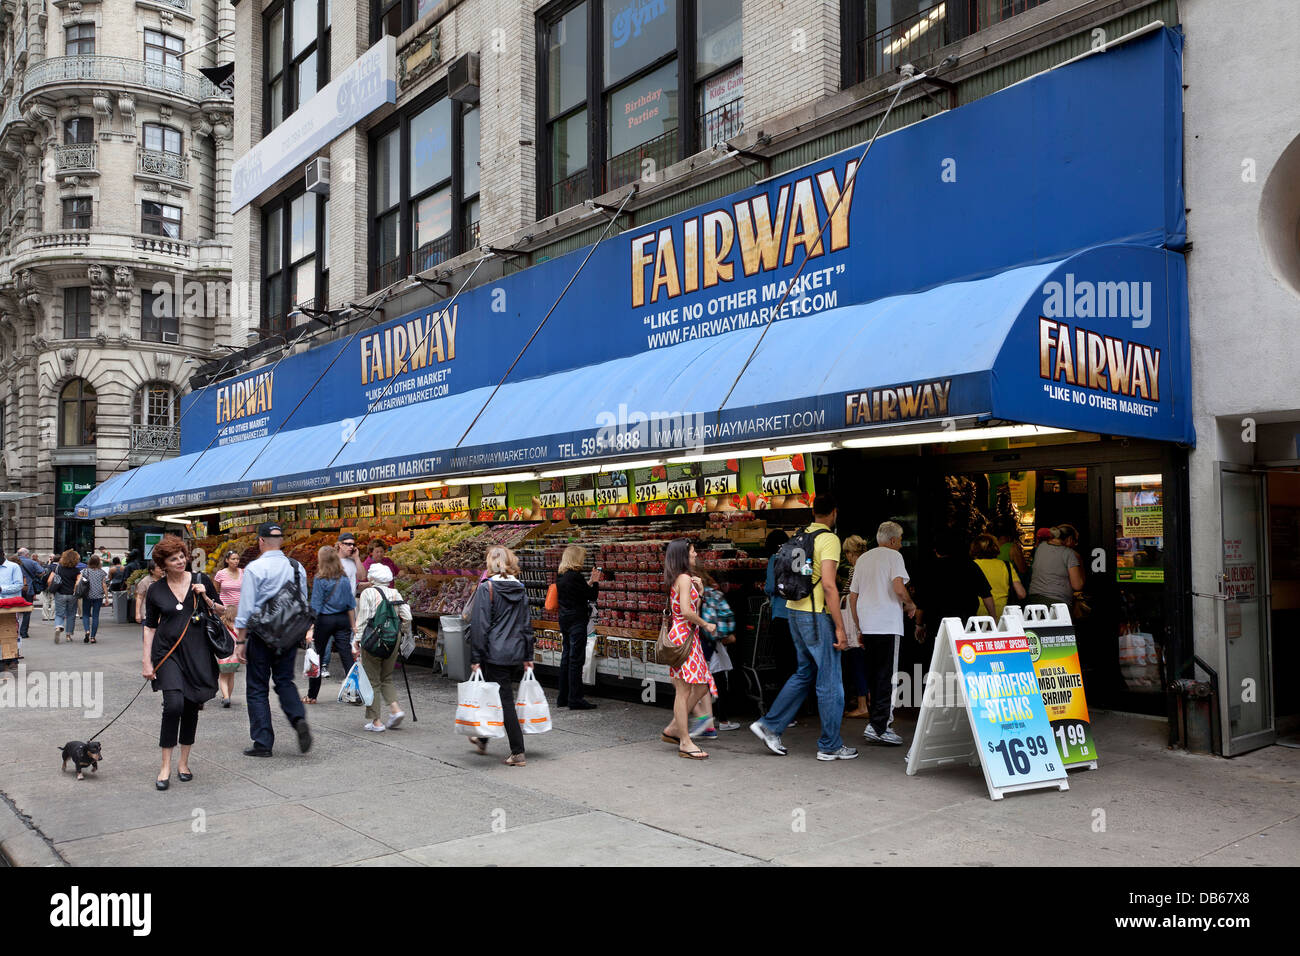 Fairway Shop Fairway Supermarket On Broadway New York City Stock Photo